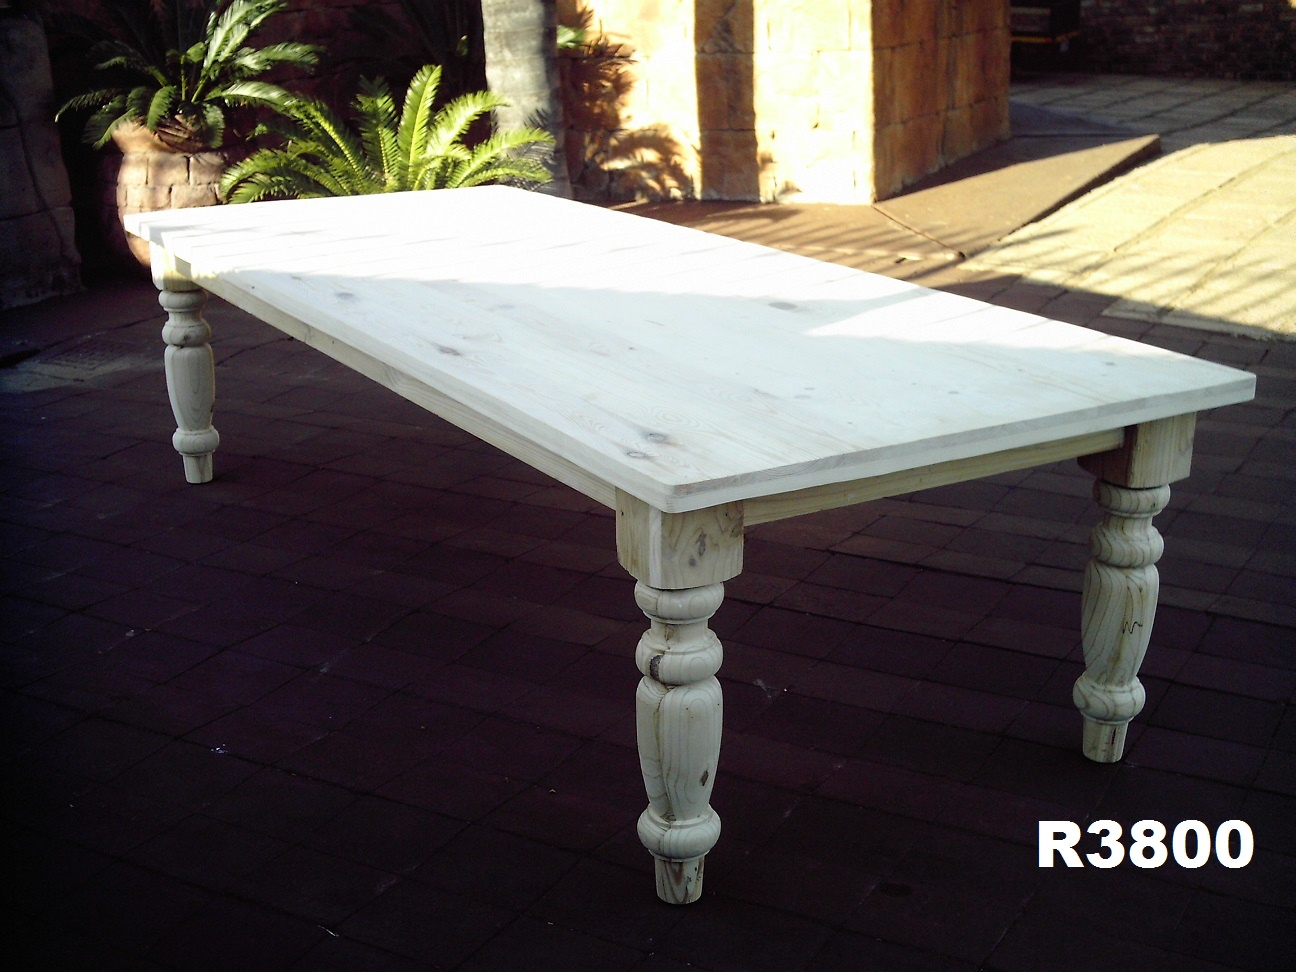 12 Seater Solid Pine Farmstyle Table (3000x1200)